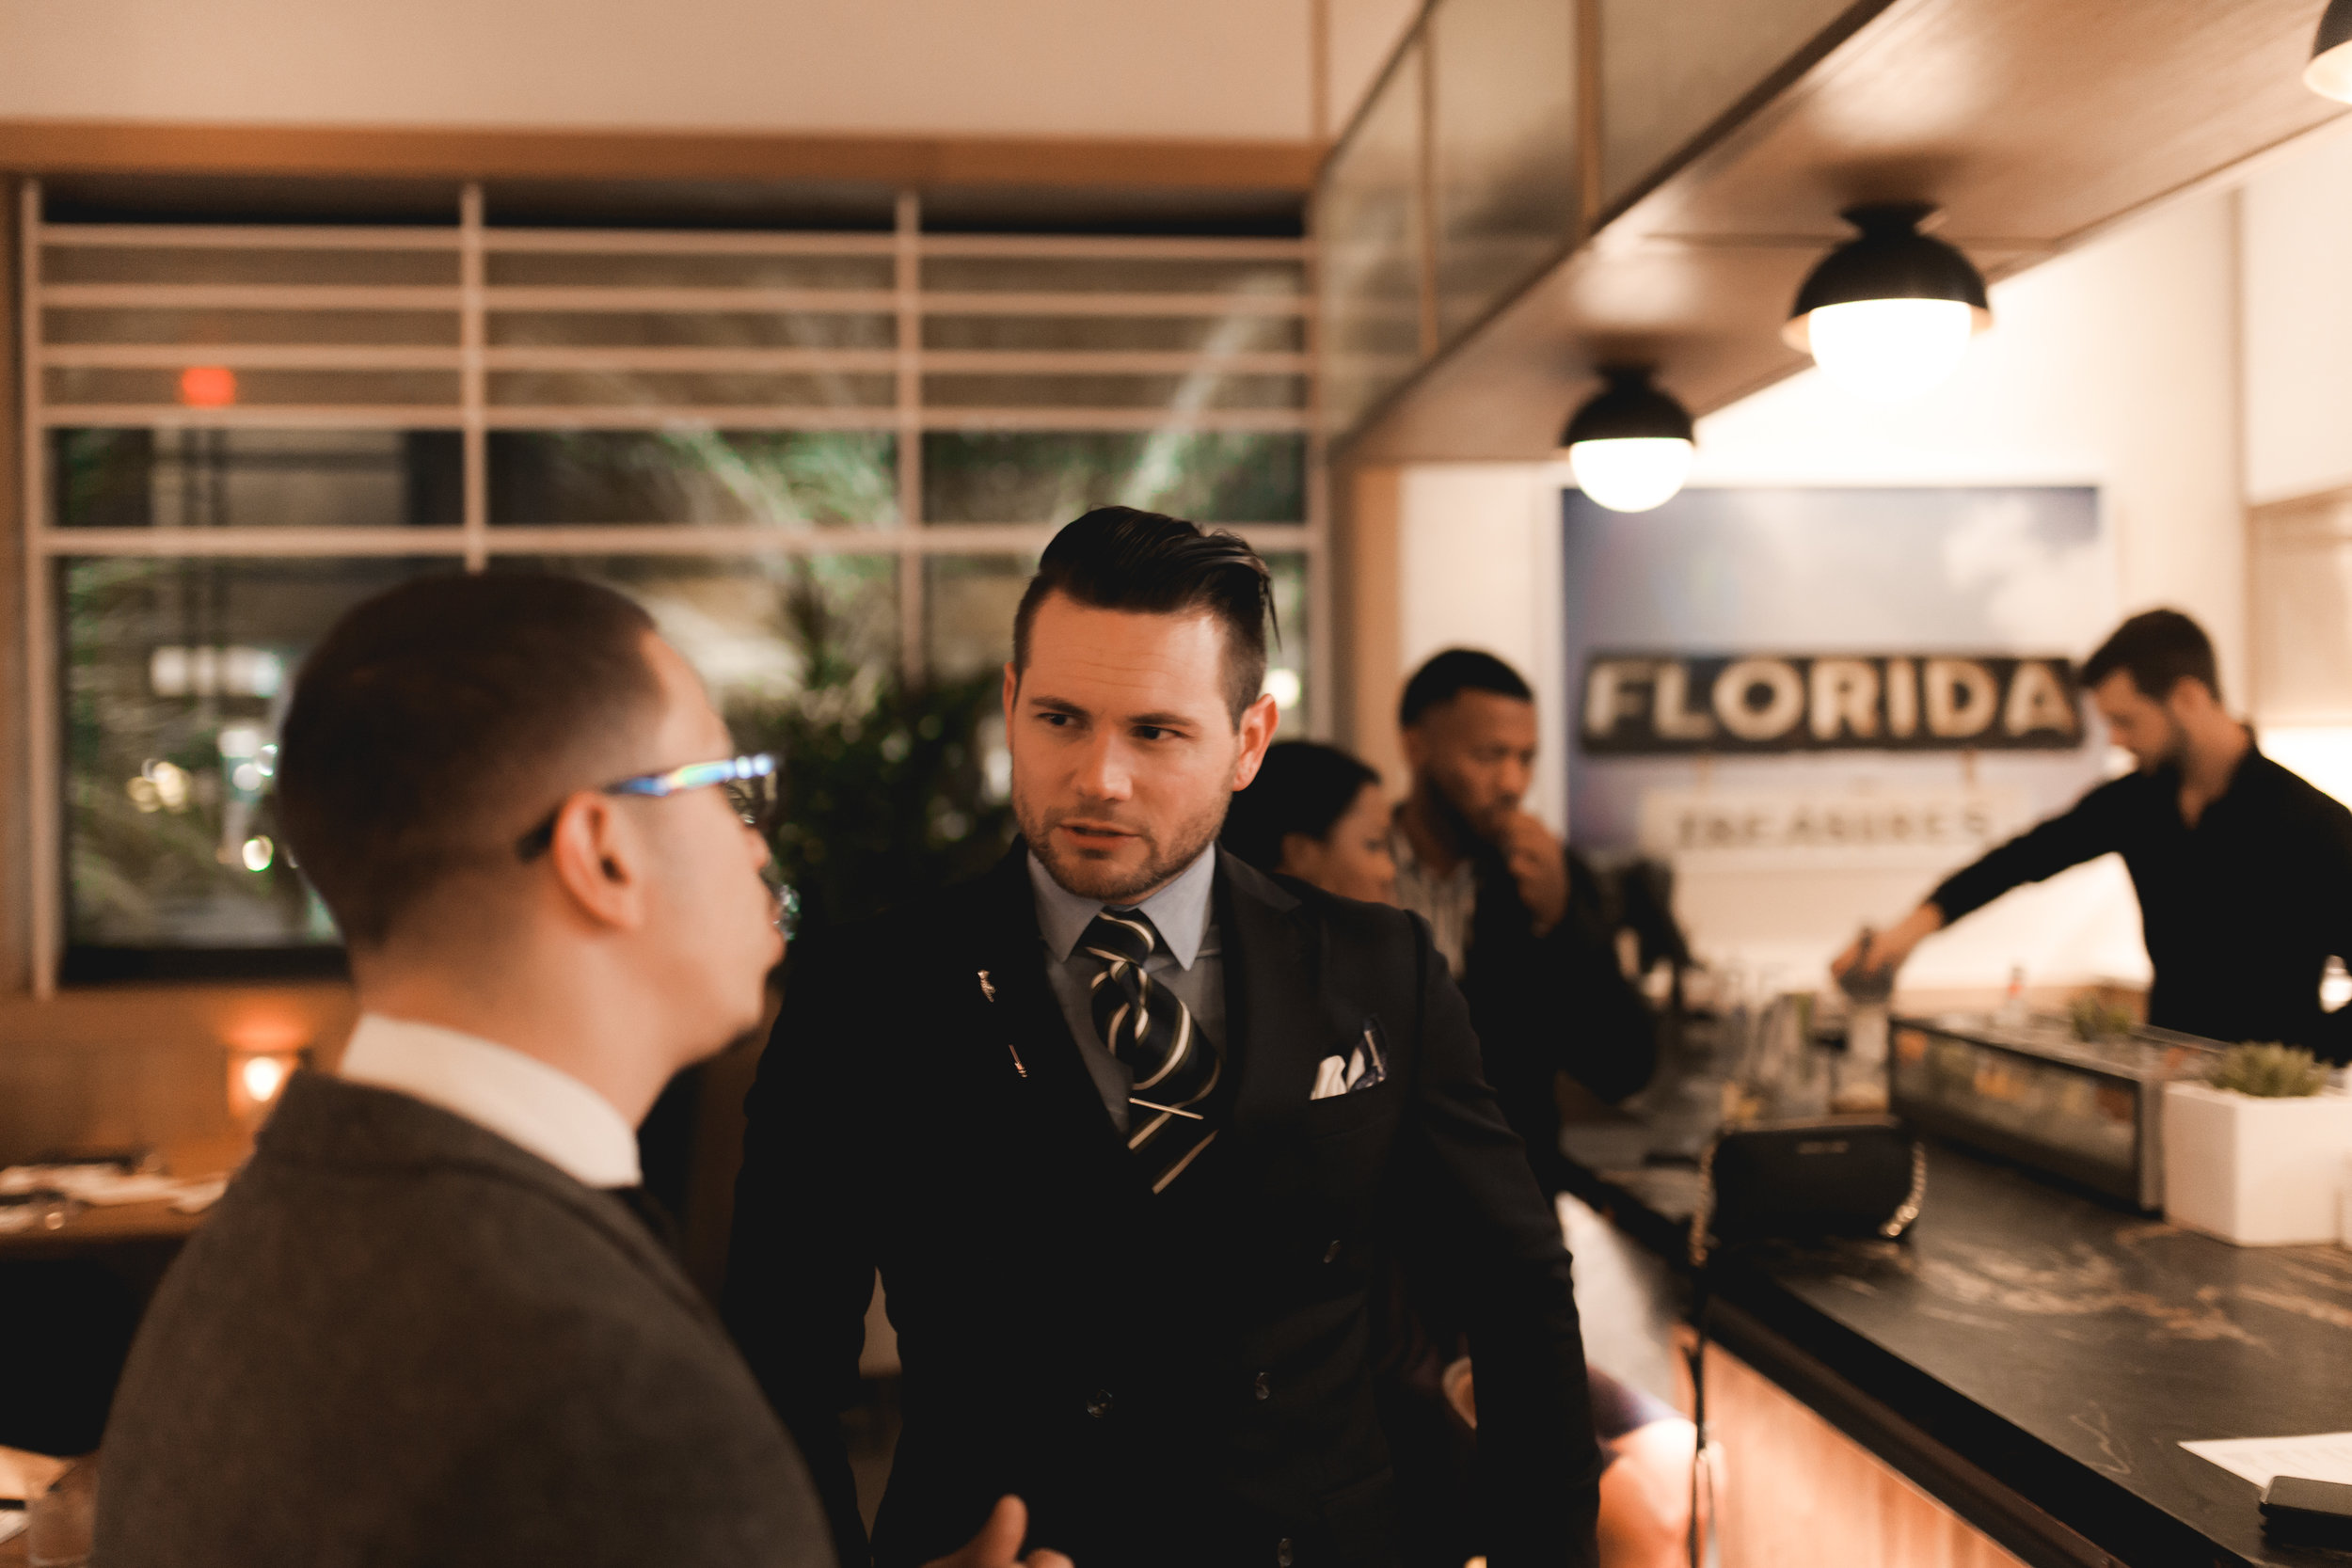 Parkandmorsemenswear The Dapper Hour GregsStyleGuide Earls Kitchen and Bar Orlando